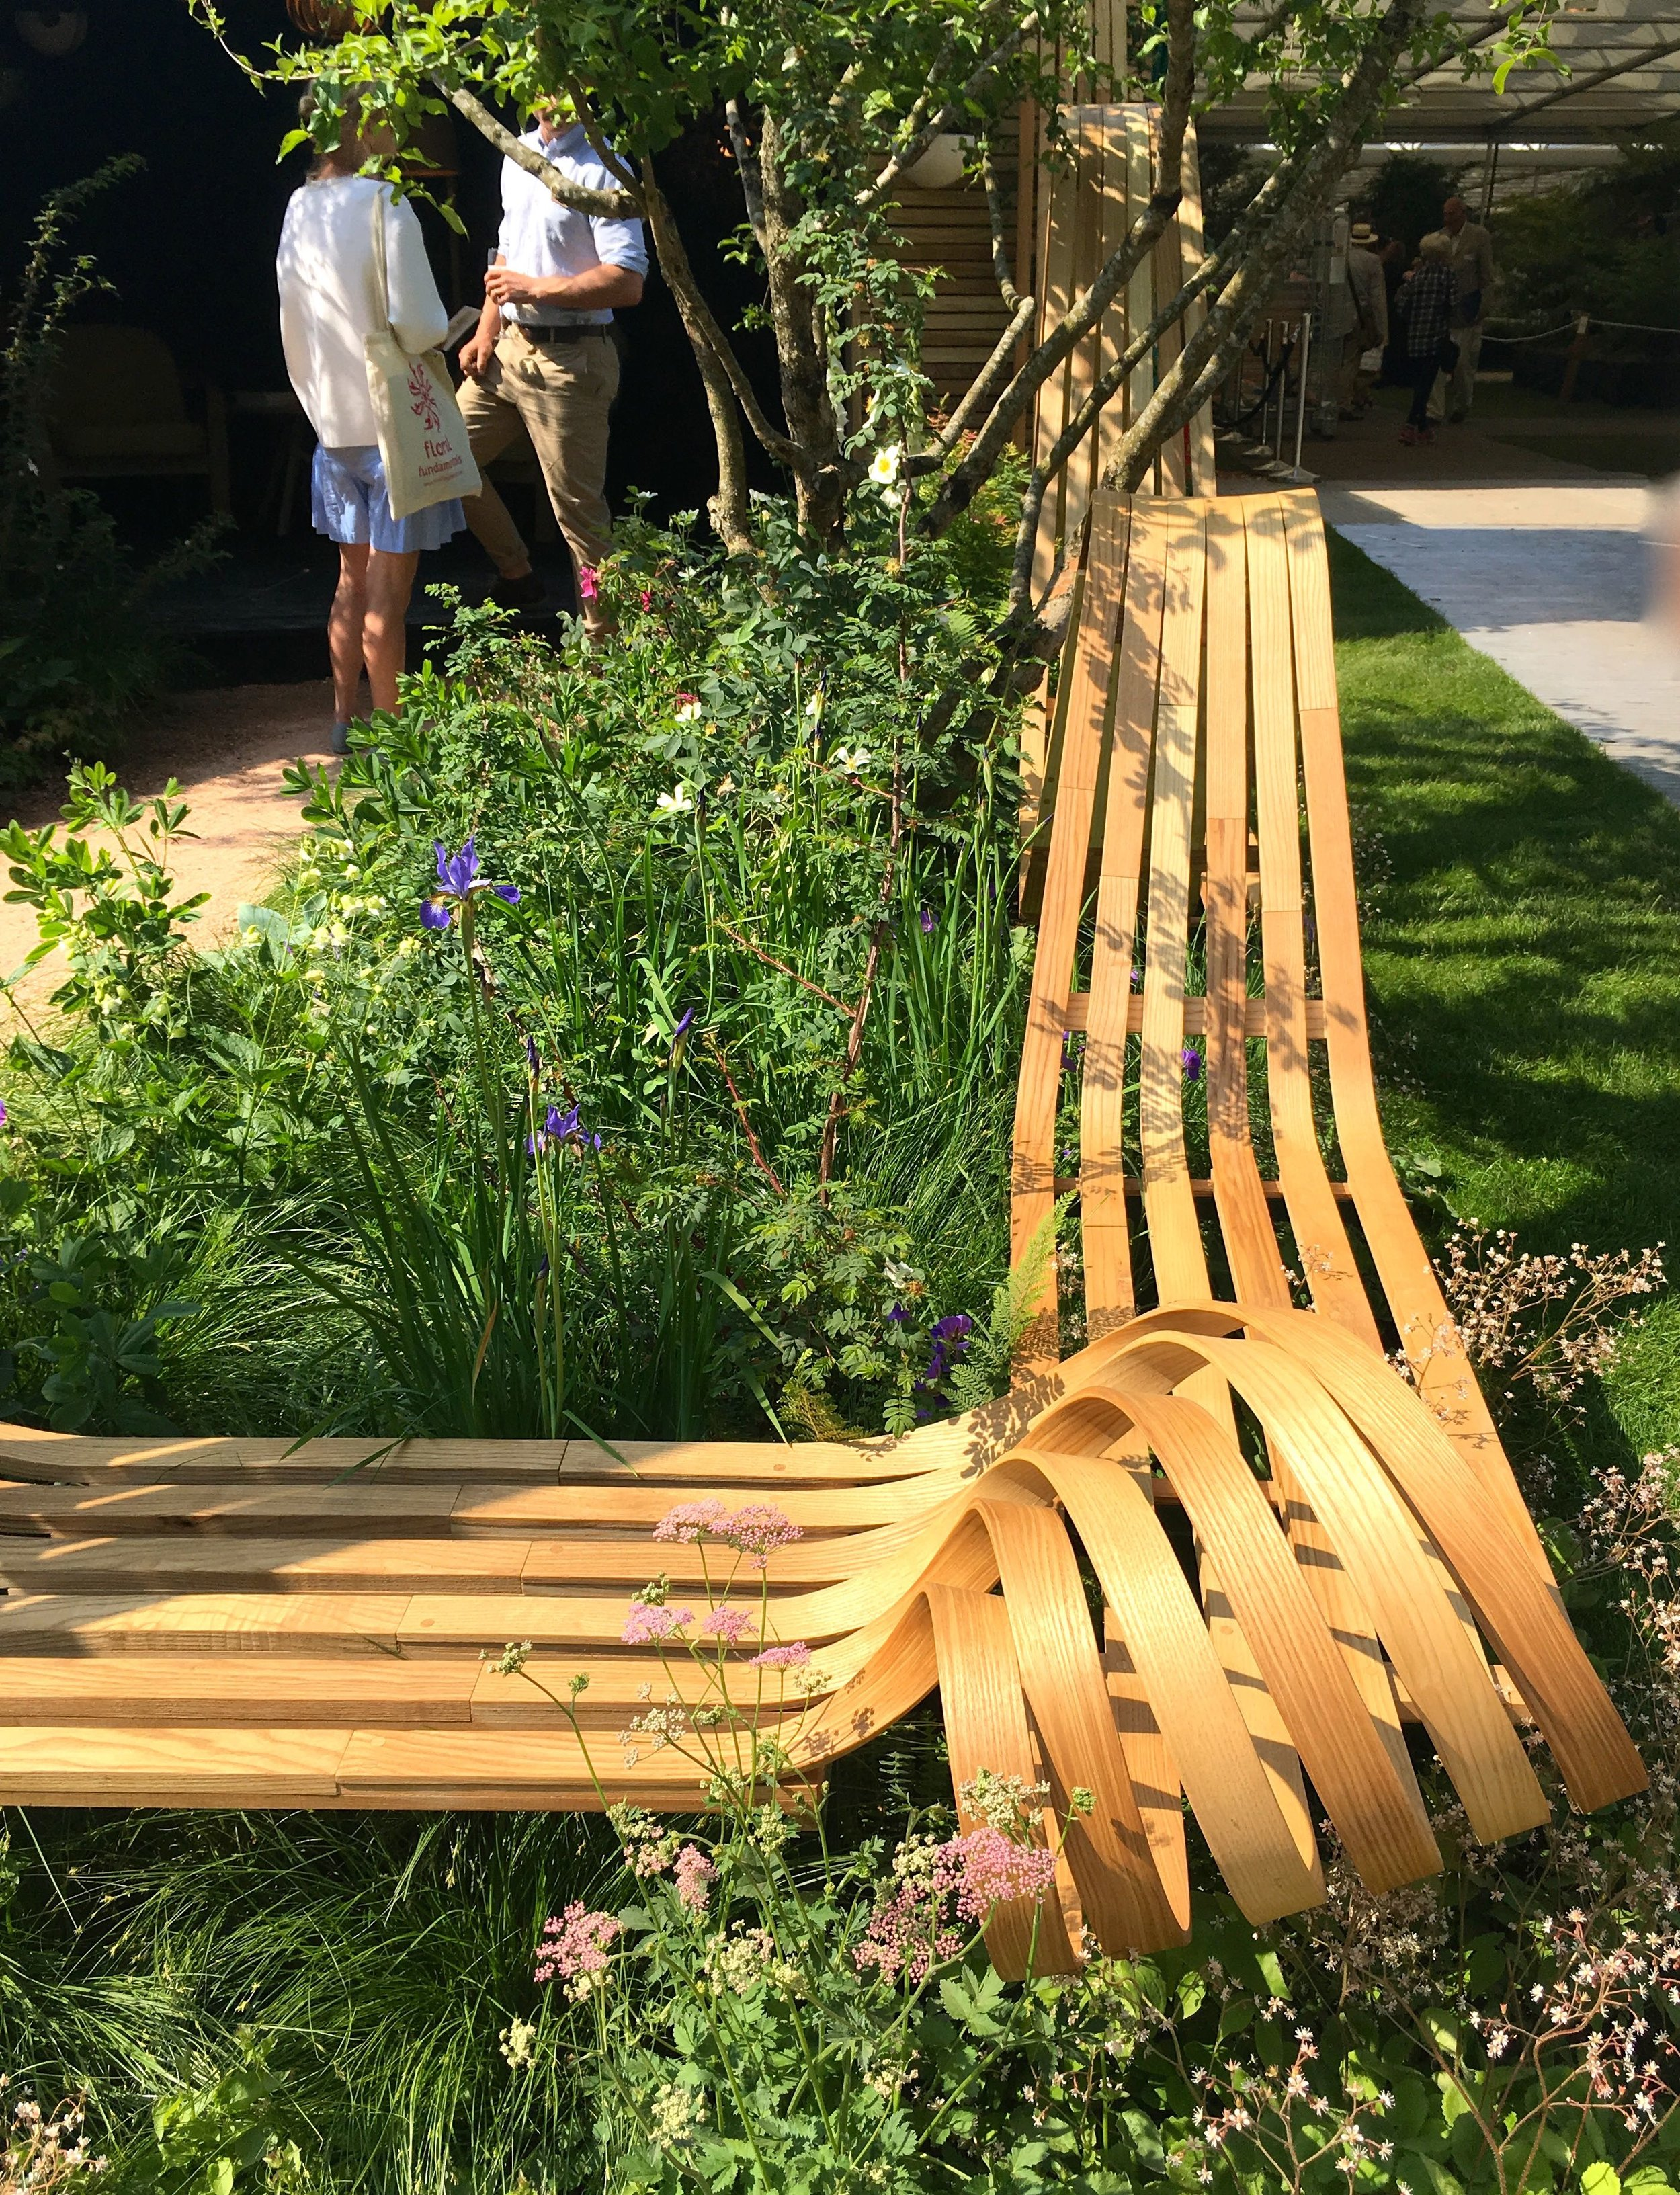 Tom Raffield at the Chelsea Flower Show in 2018